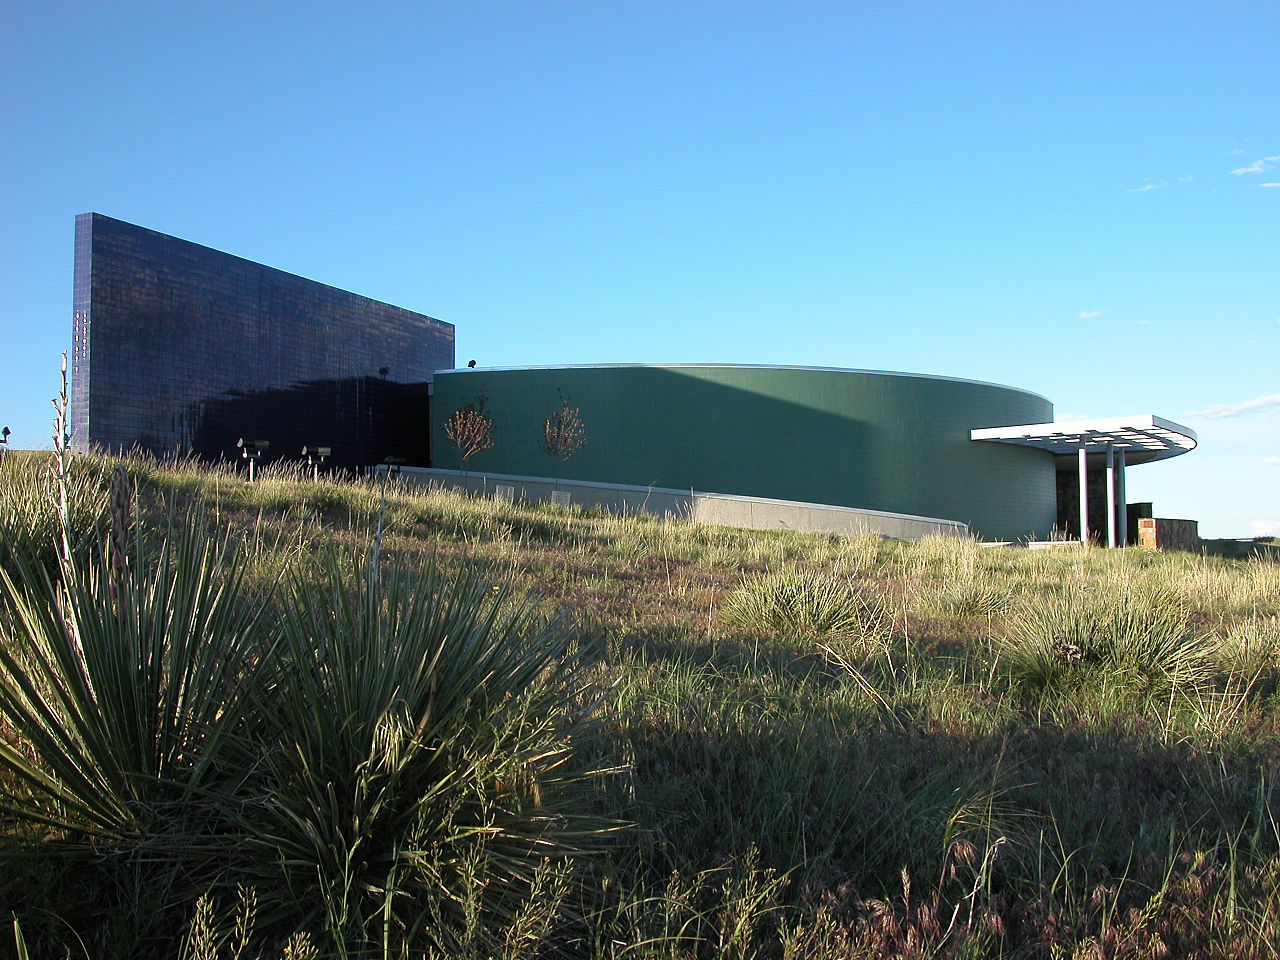 The National Historic Trails Interpretive Center opened in 2002.